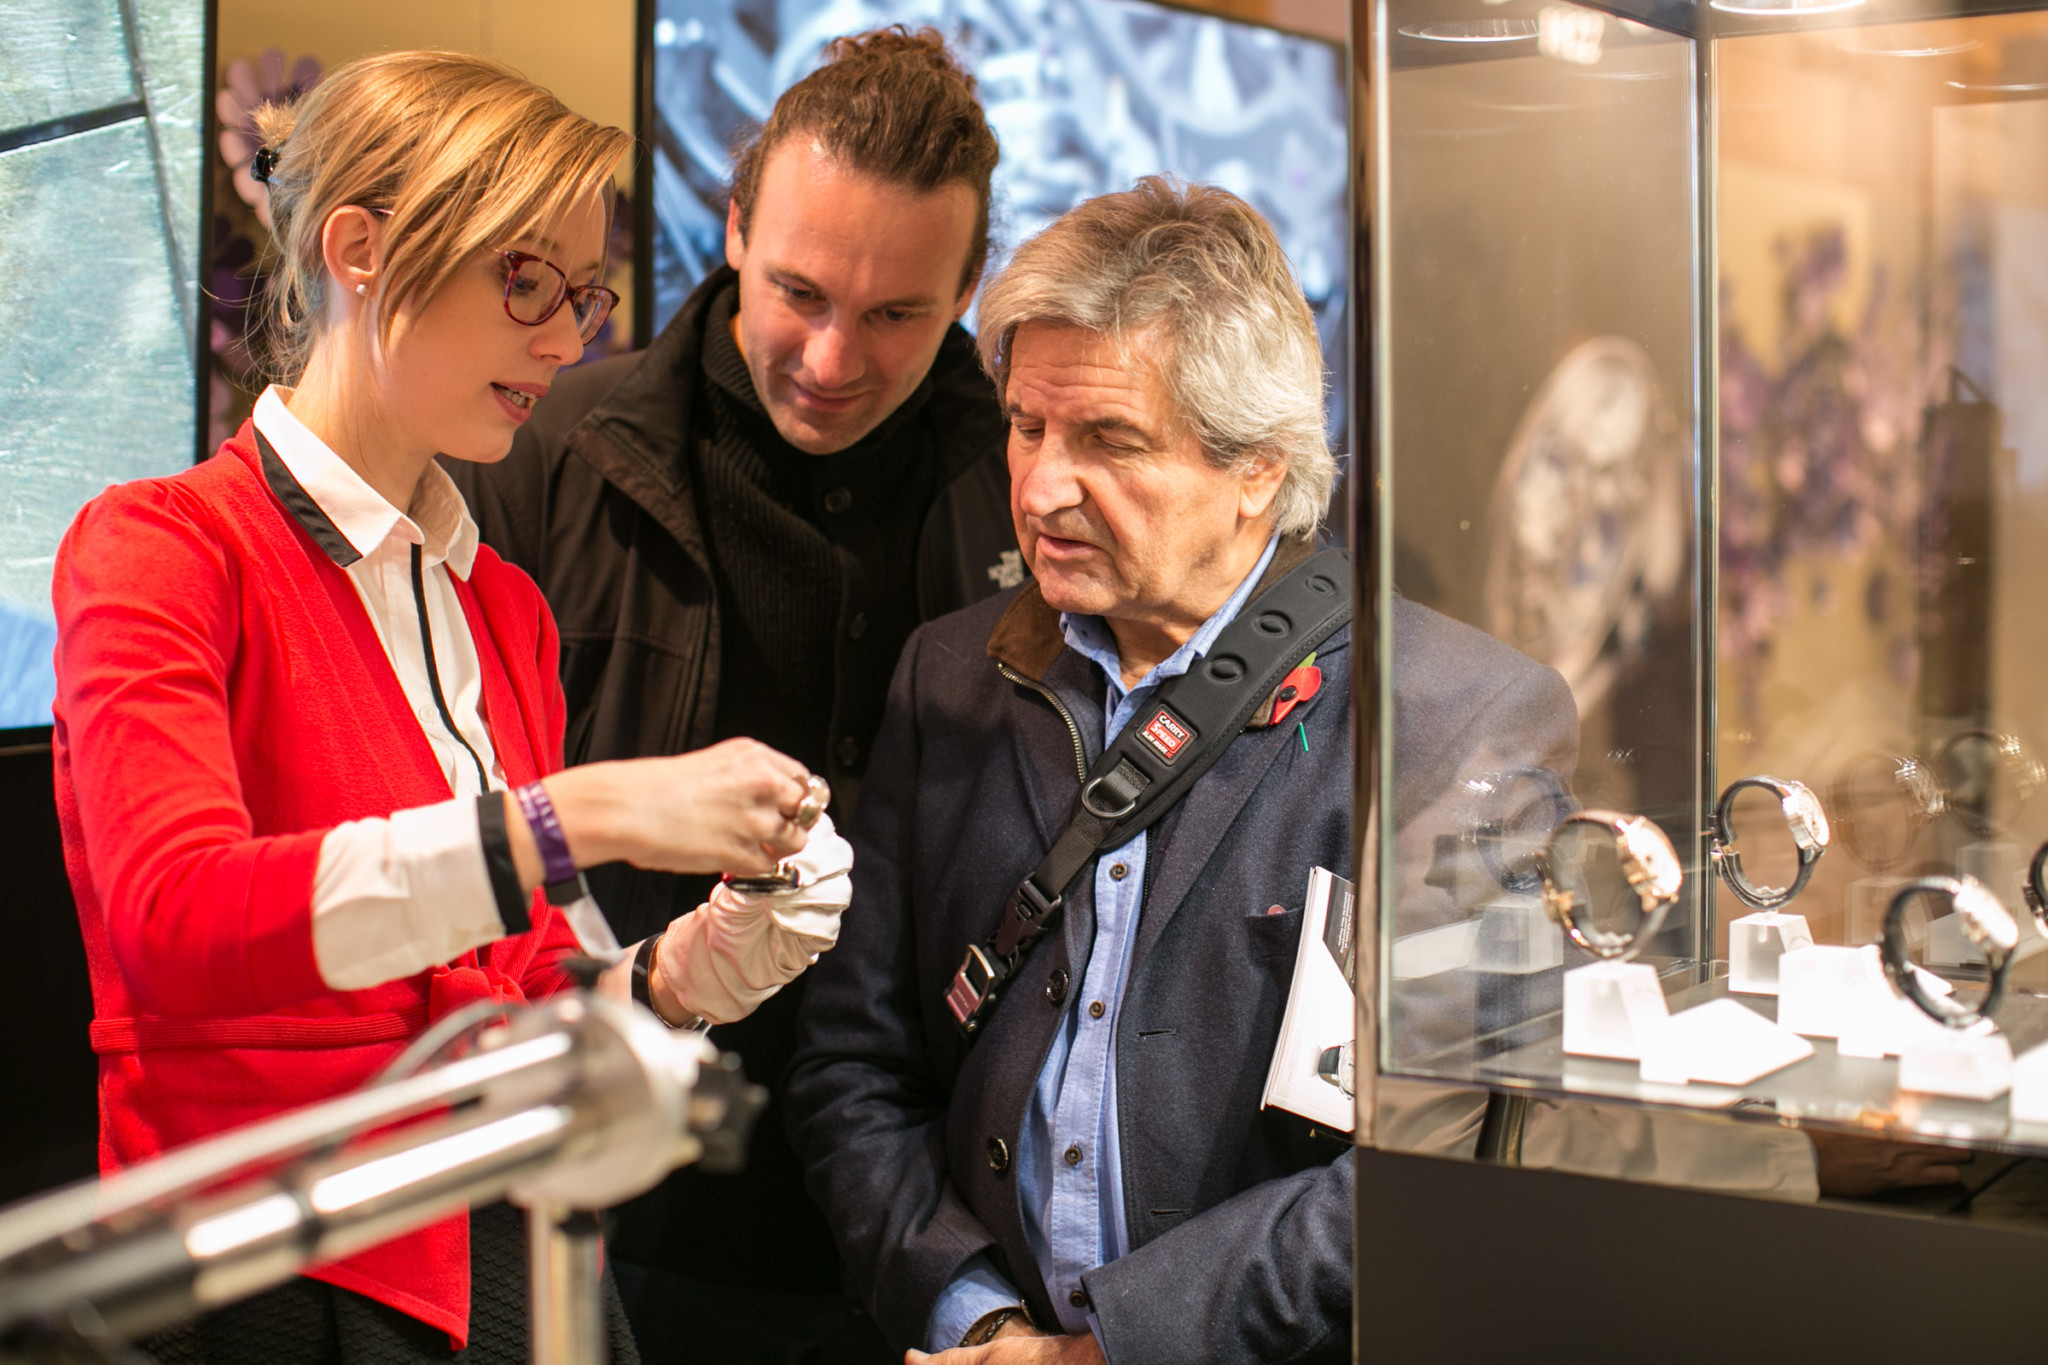 salonqp-2016-images-credit-james-north-2